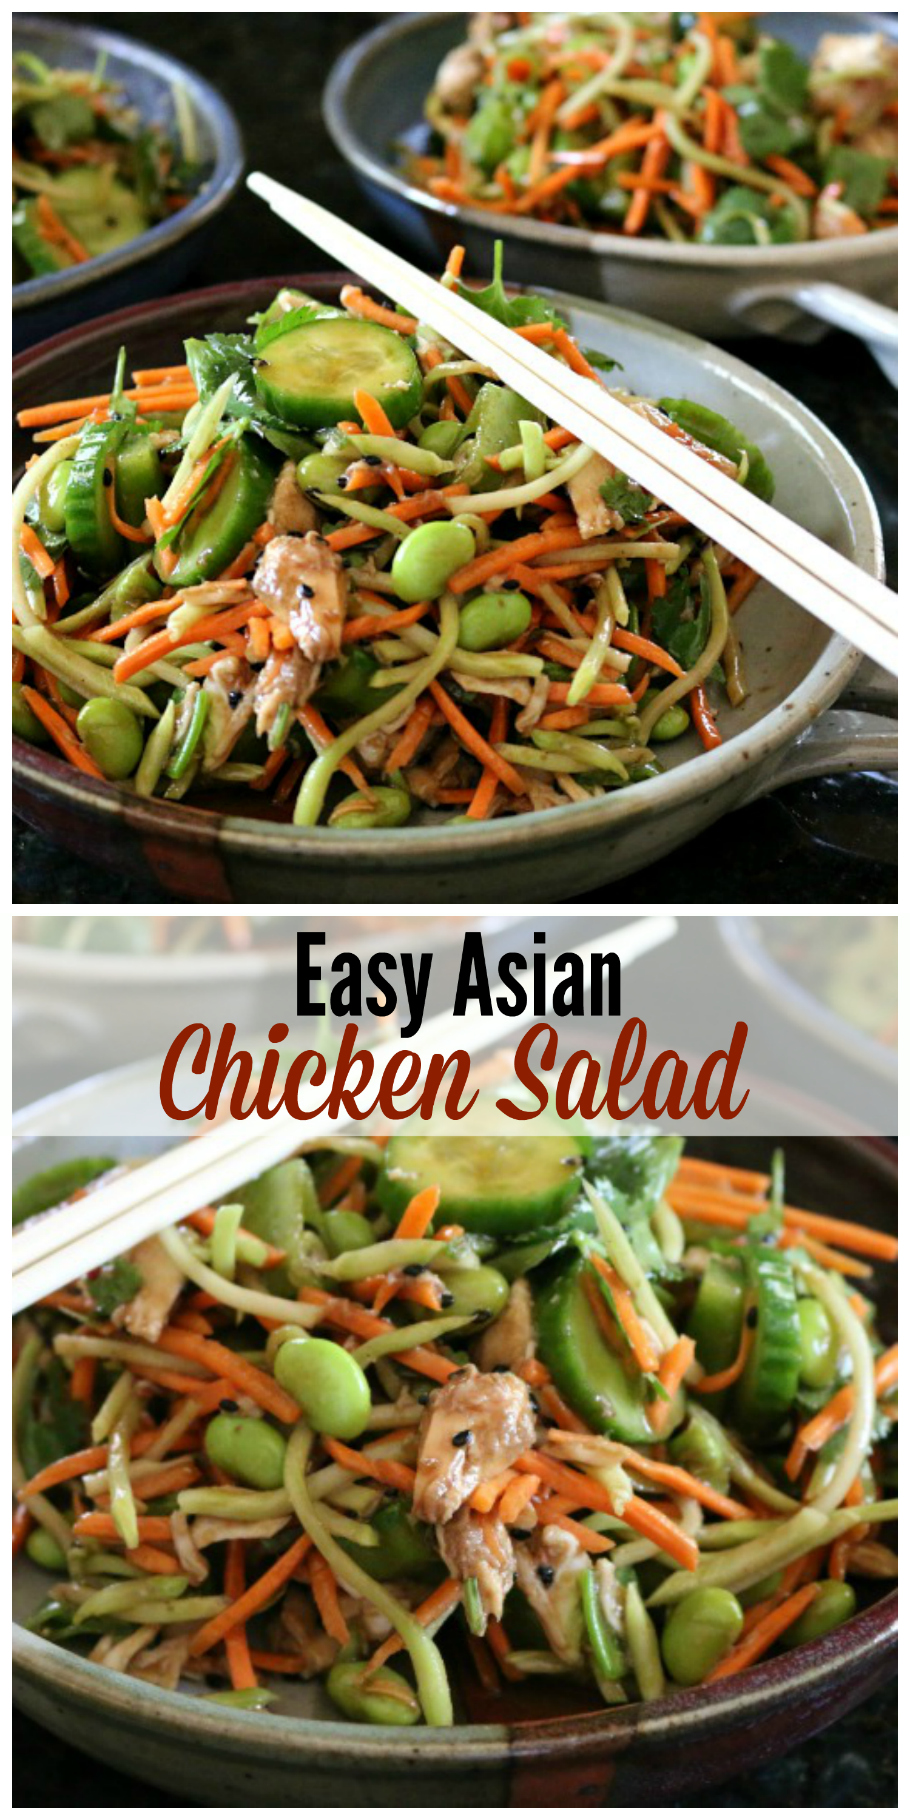 Easy Asian Chicken Salad, make this recipe in just minutes. Simple and Healthy, you can beat that!